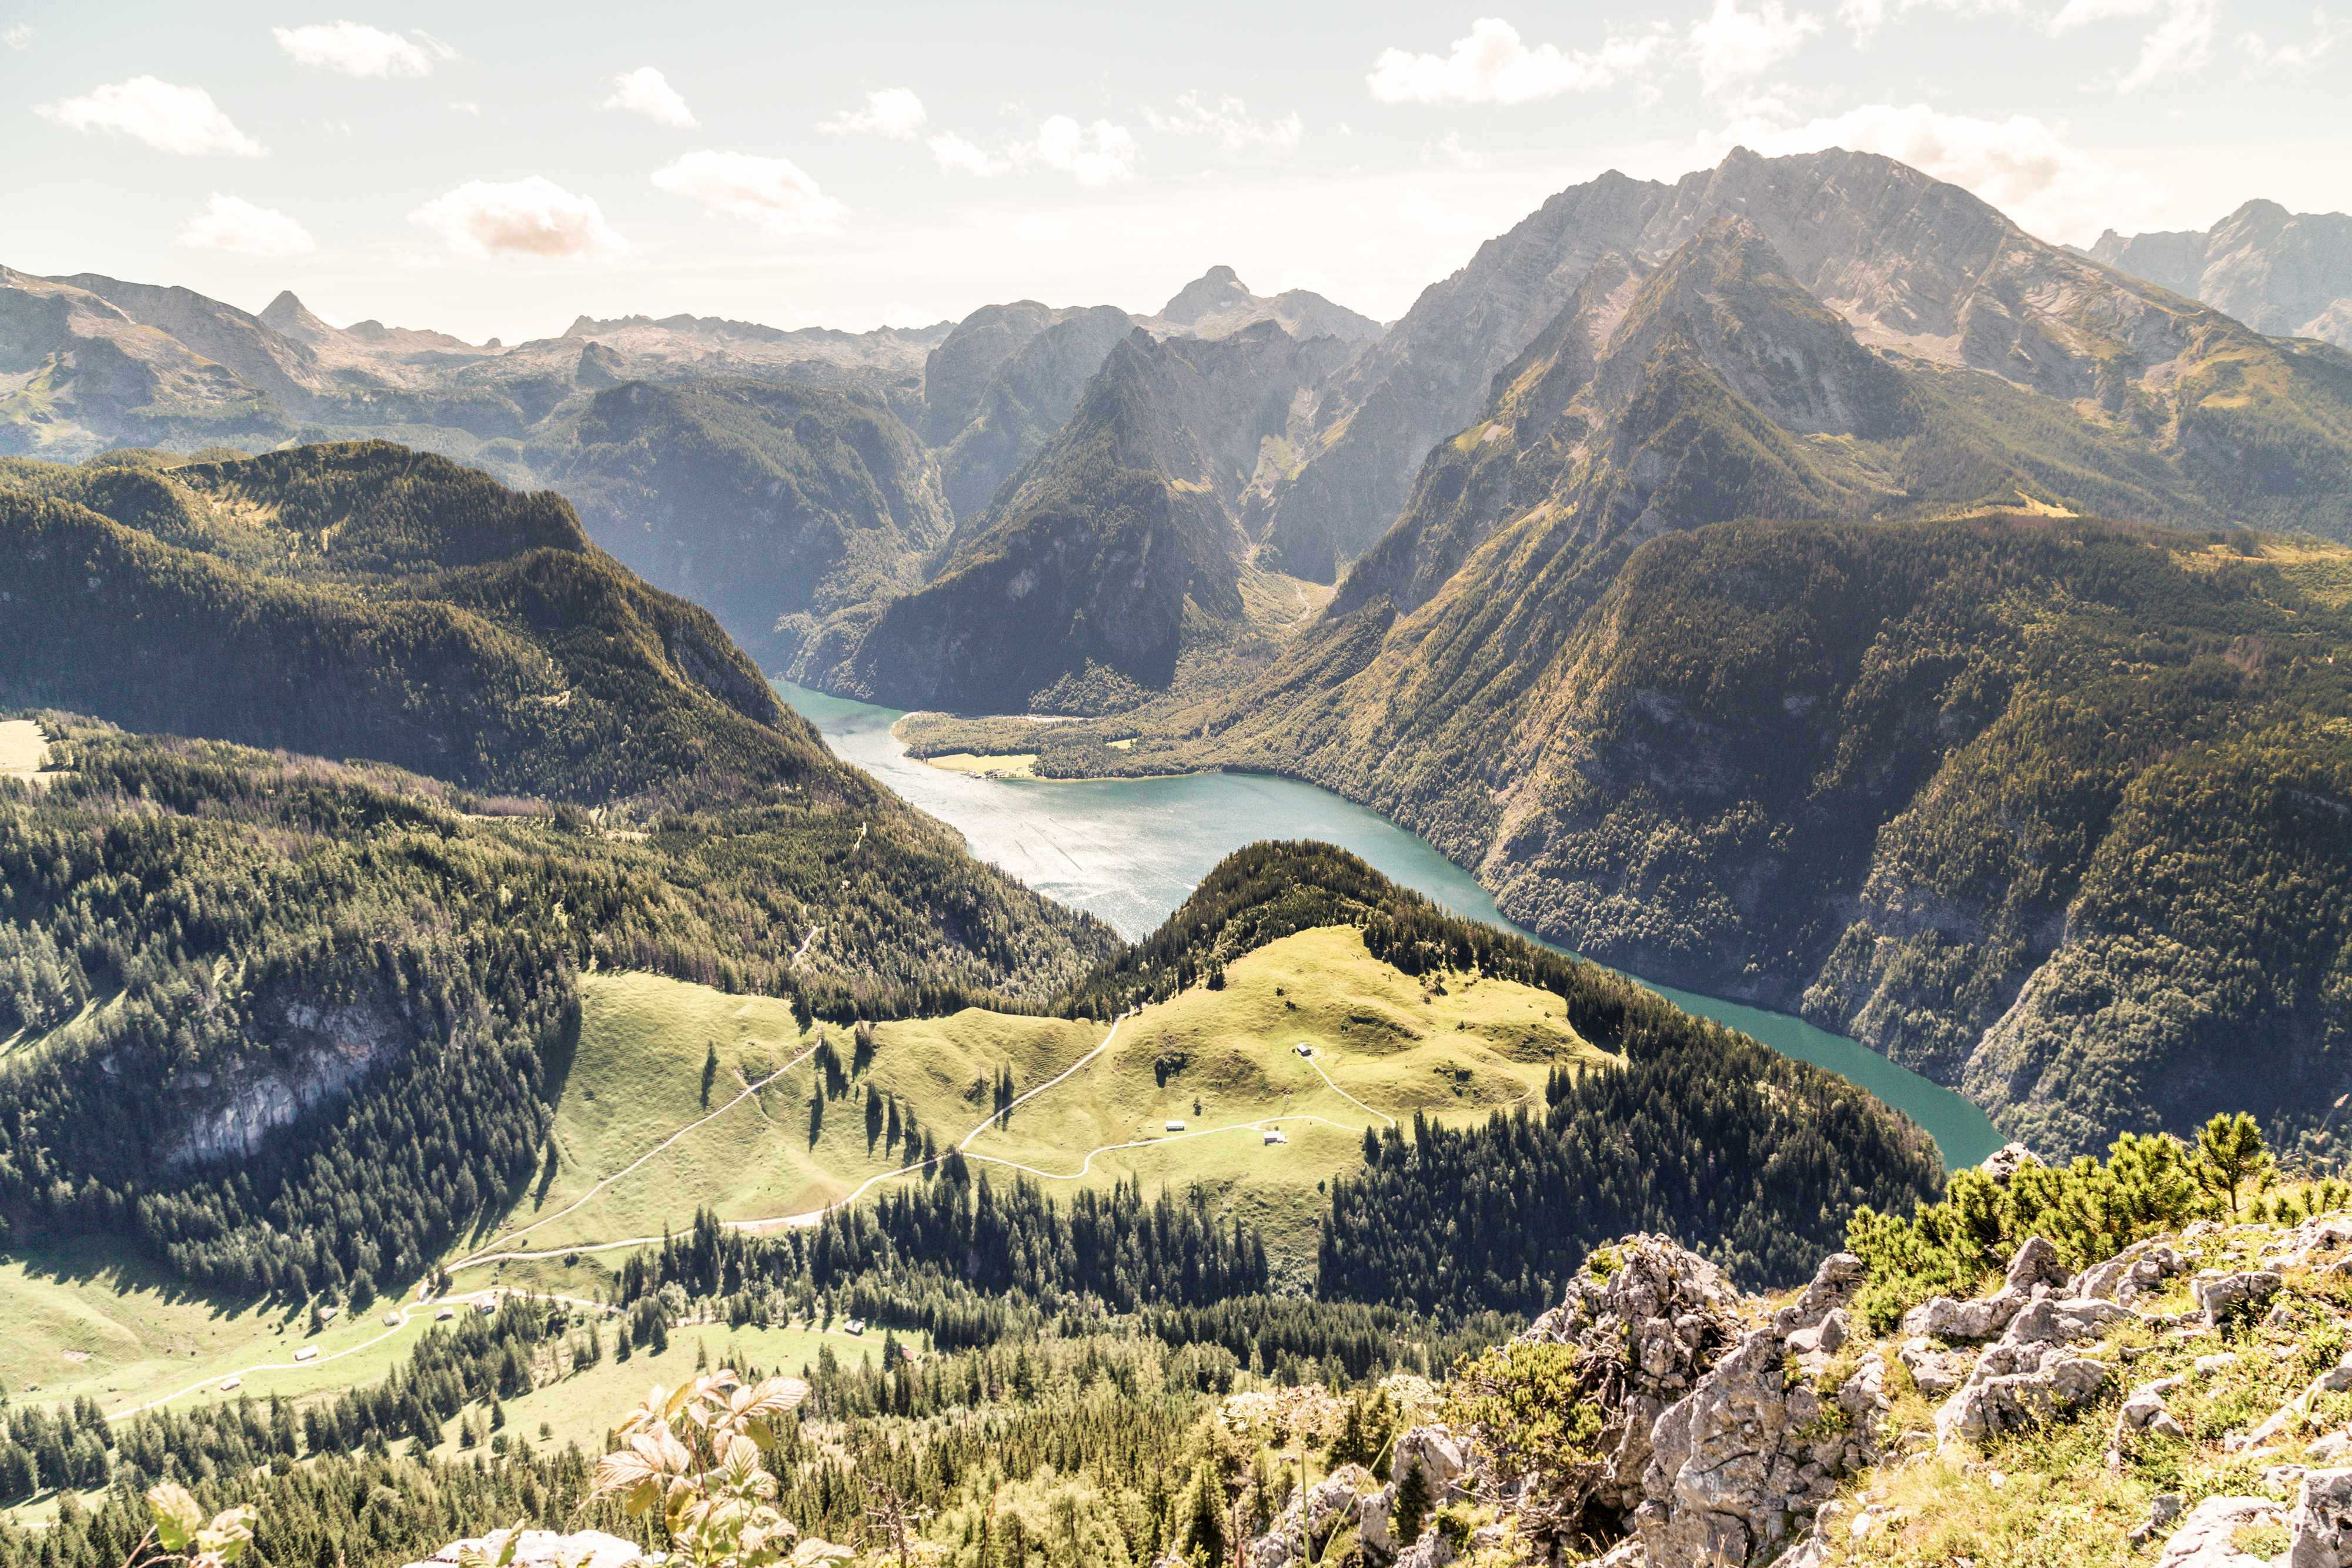 Peering out over the water from a grassy peak in Berchtesgaden National Park